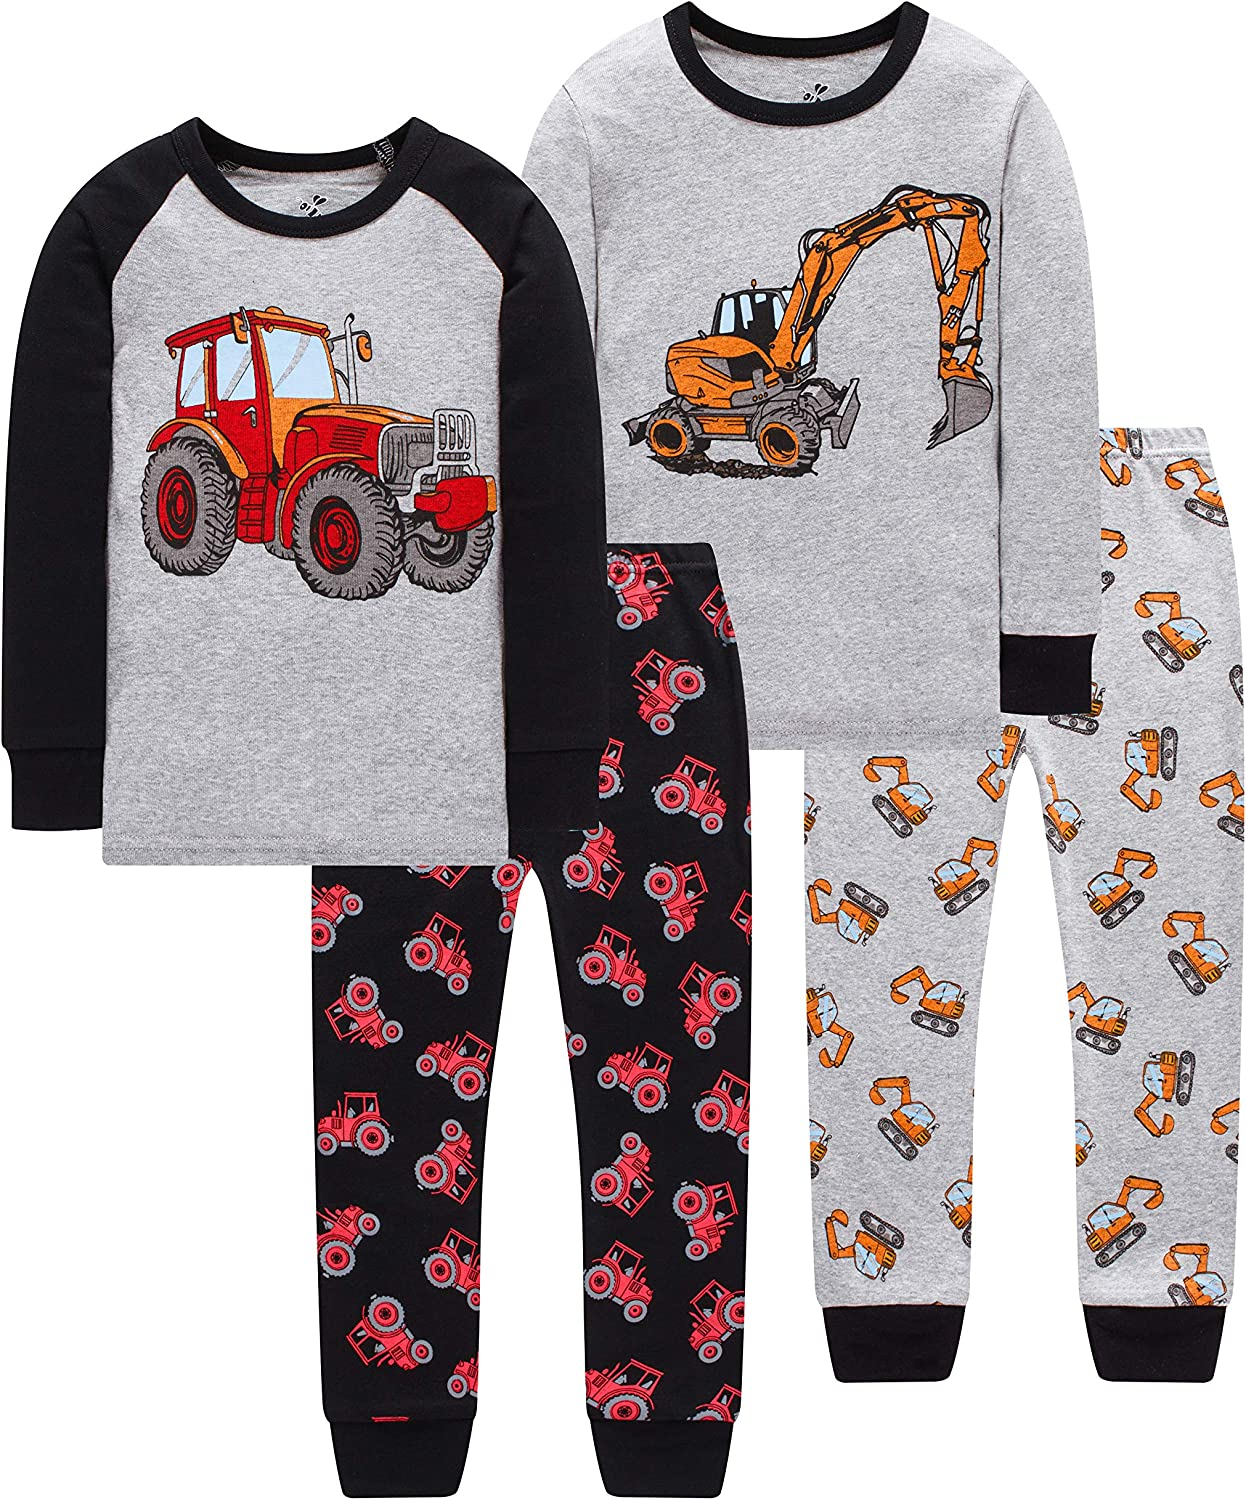 Truck Pajamas for Boys Girls Christmas Sleepwear Baby Excavator Clothes 4 Pieces Pants Set